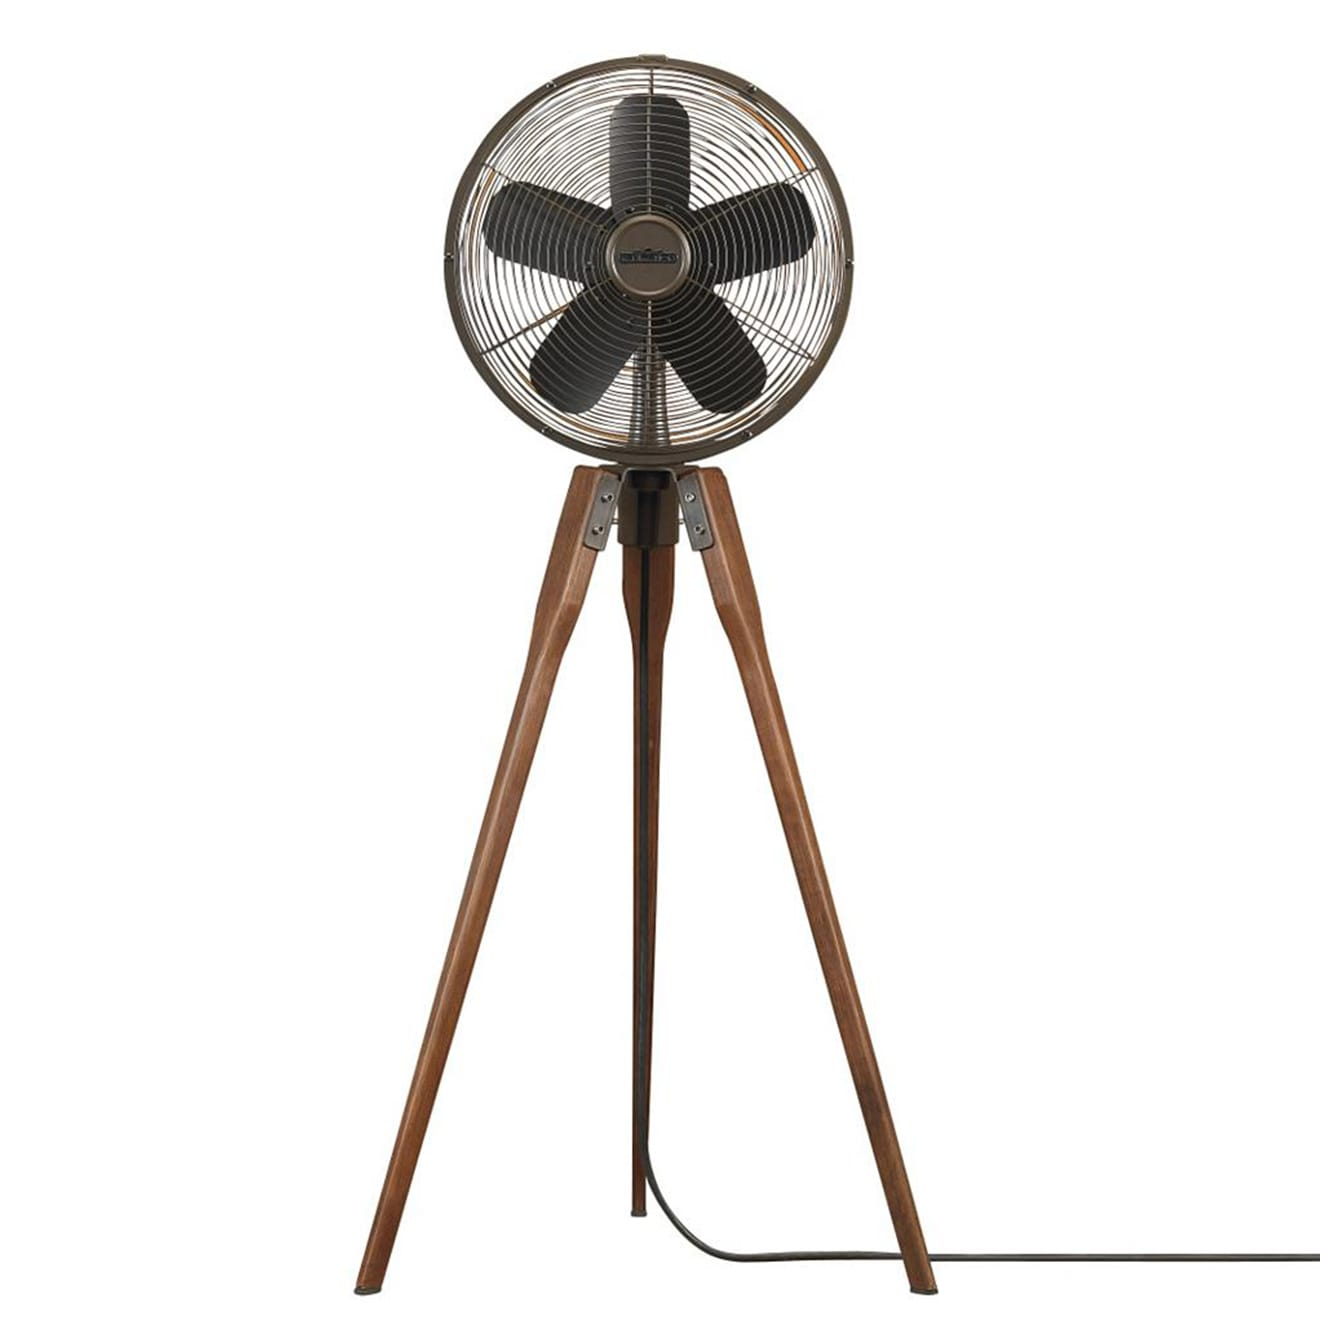 Arden Floor Fan by Fanimation Fans